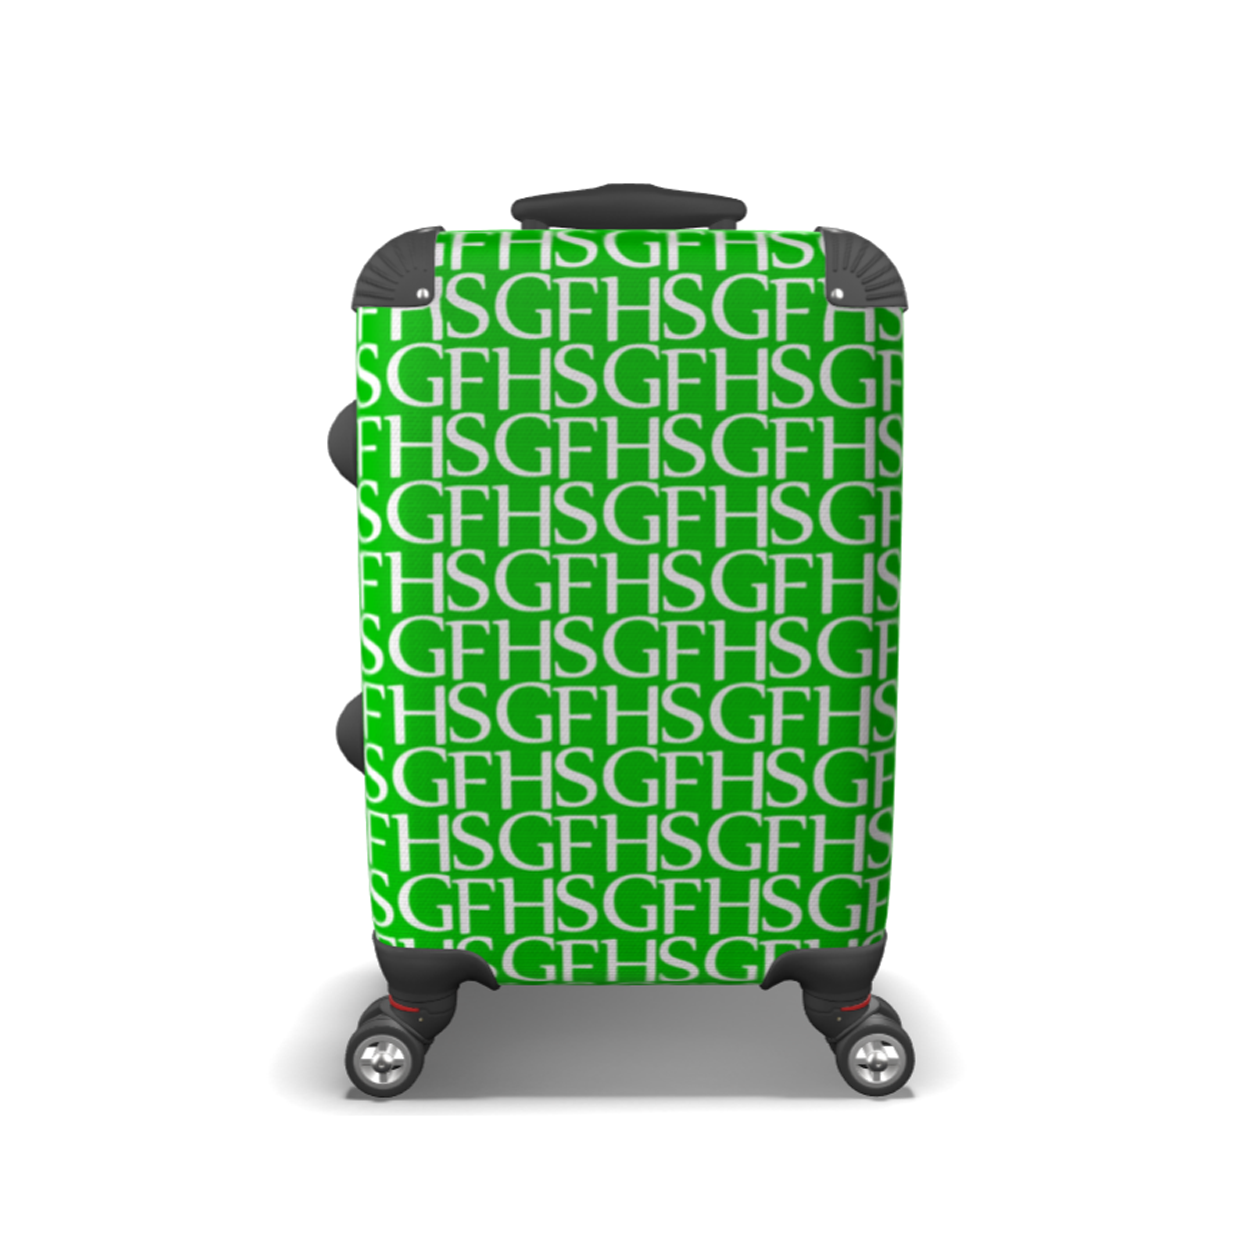 SGFH GREAT GREEN CARRY ON LUGGAGE- 00BB0